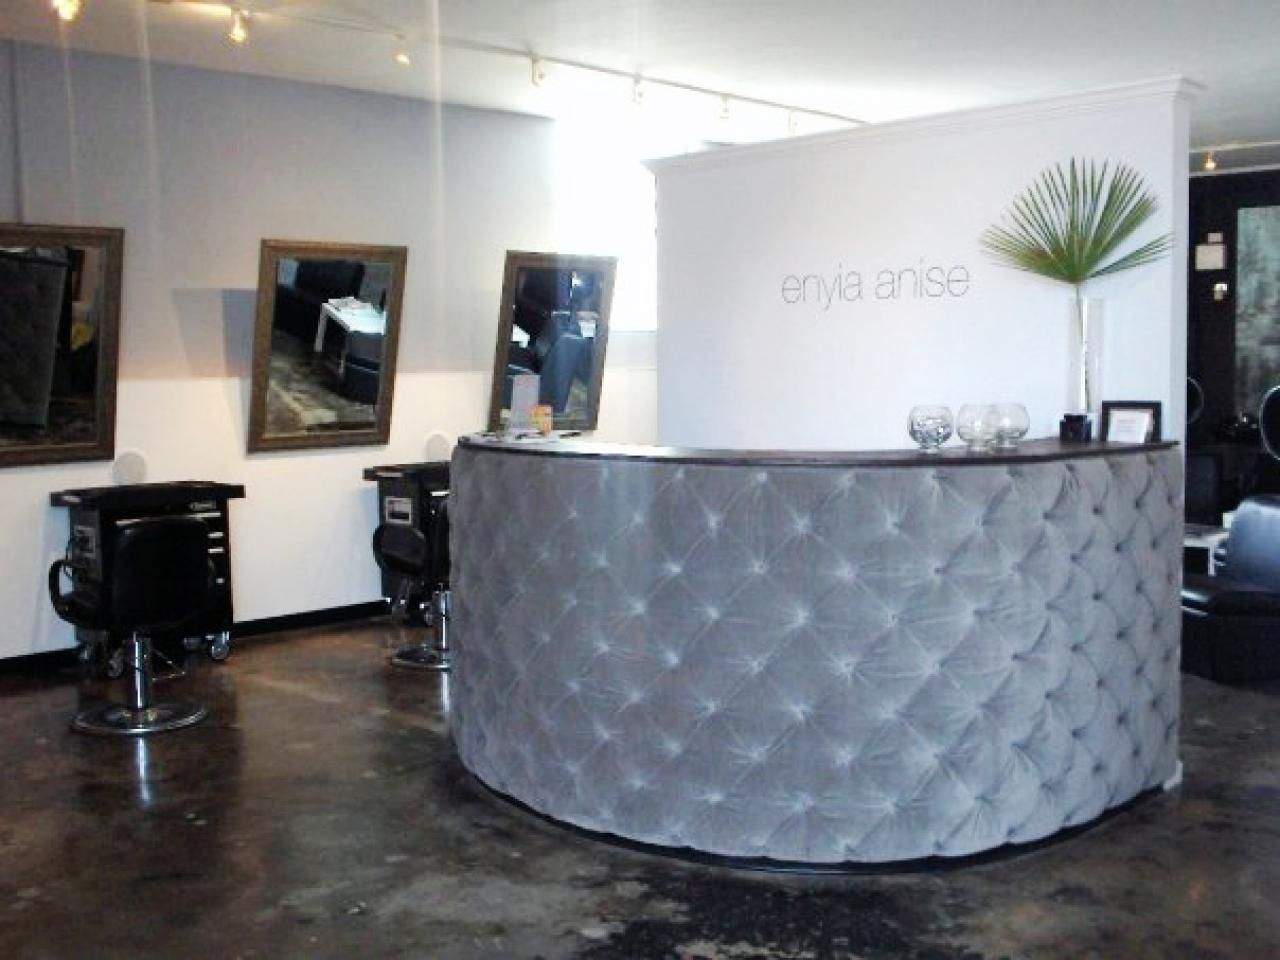 to welcome clients to this upscale beauty salon hines created a custommade quilted salon reception deskspa - Salon Reception Desk